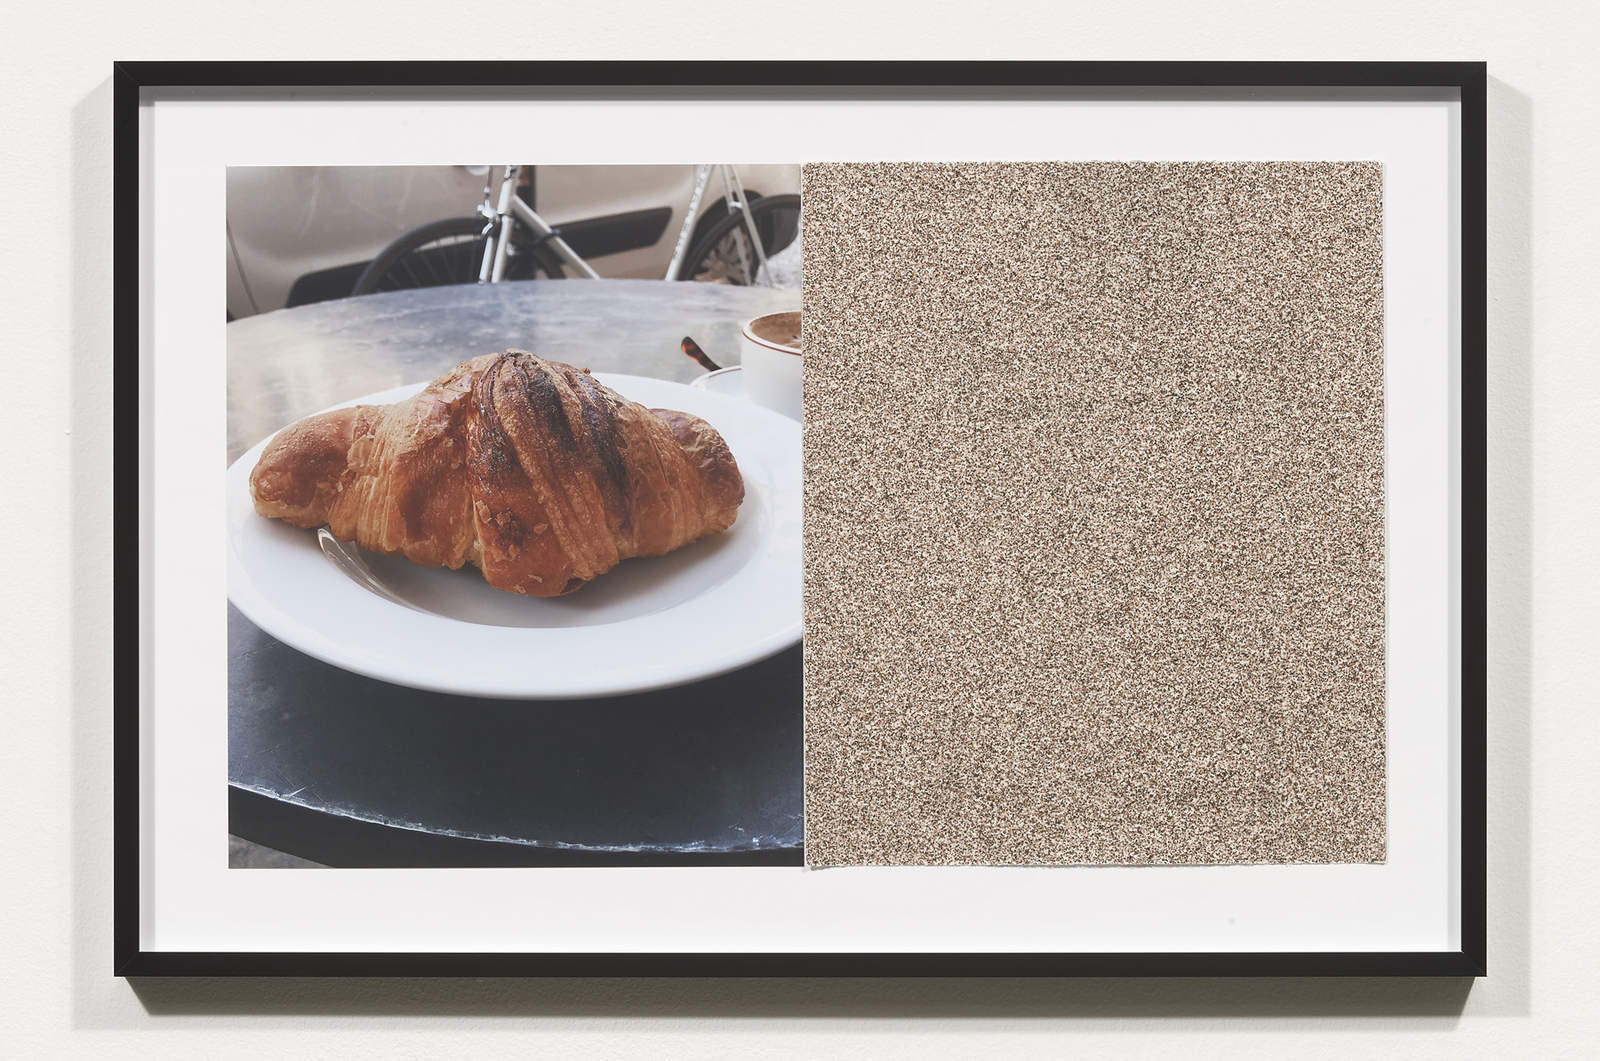 Wermers_Croissants & Architecture #20, 2016_C-print, sandpaper sheet, framed_14 3_8 x 21 1_2 in_NW00061PG